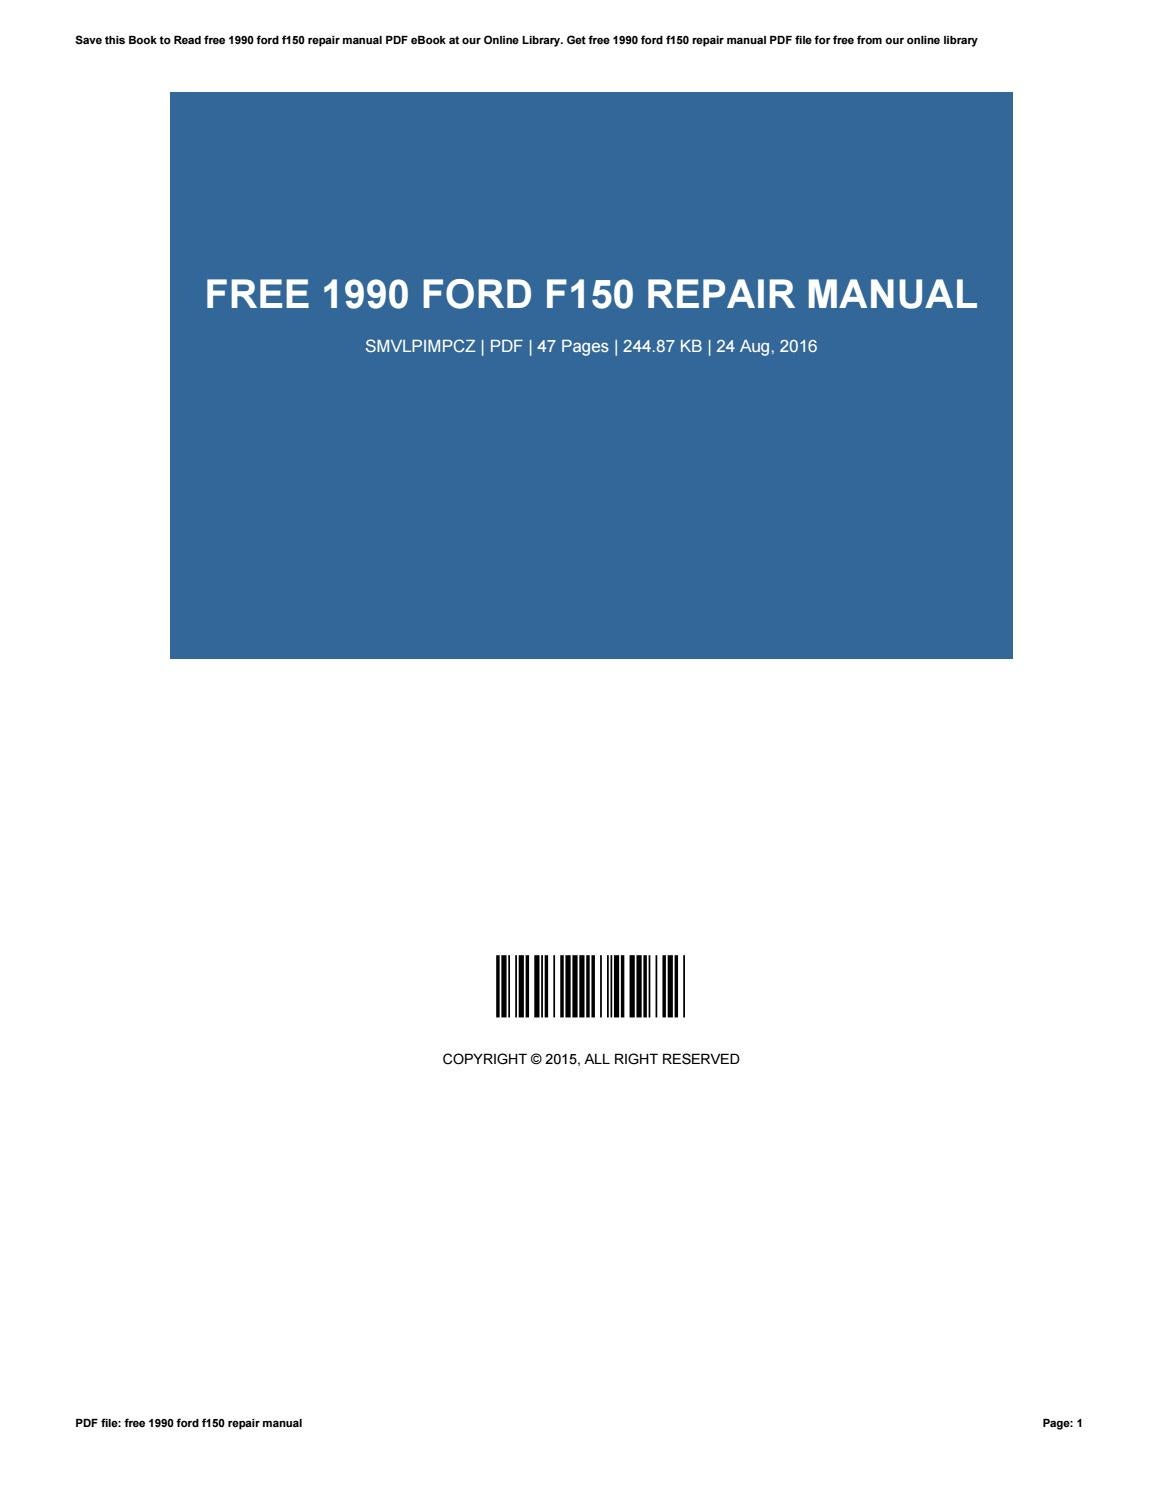 ford f150 factory service manual pdf